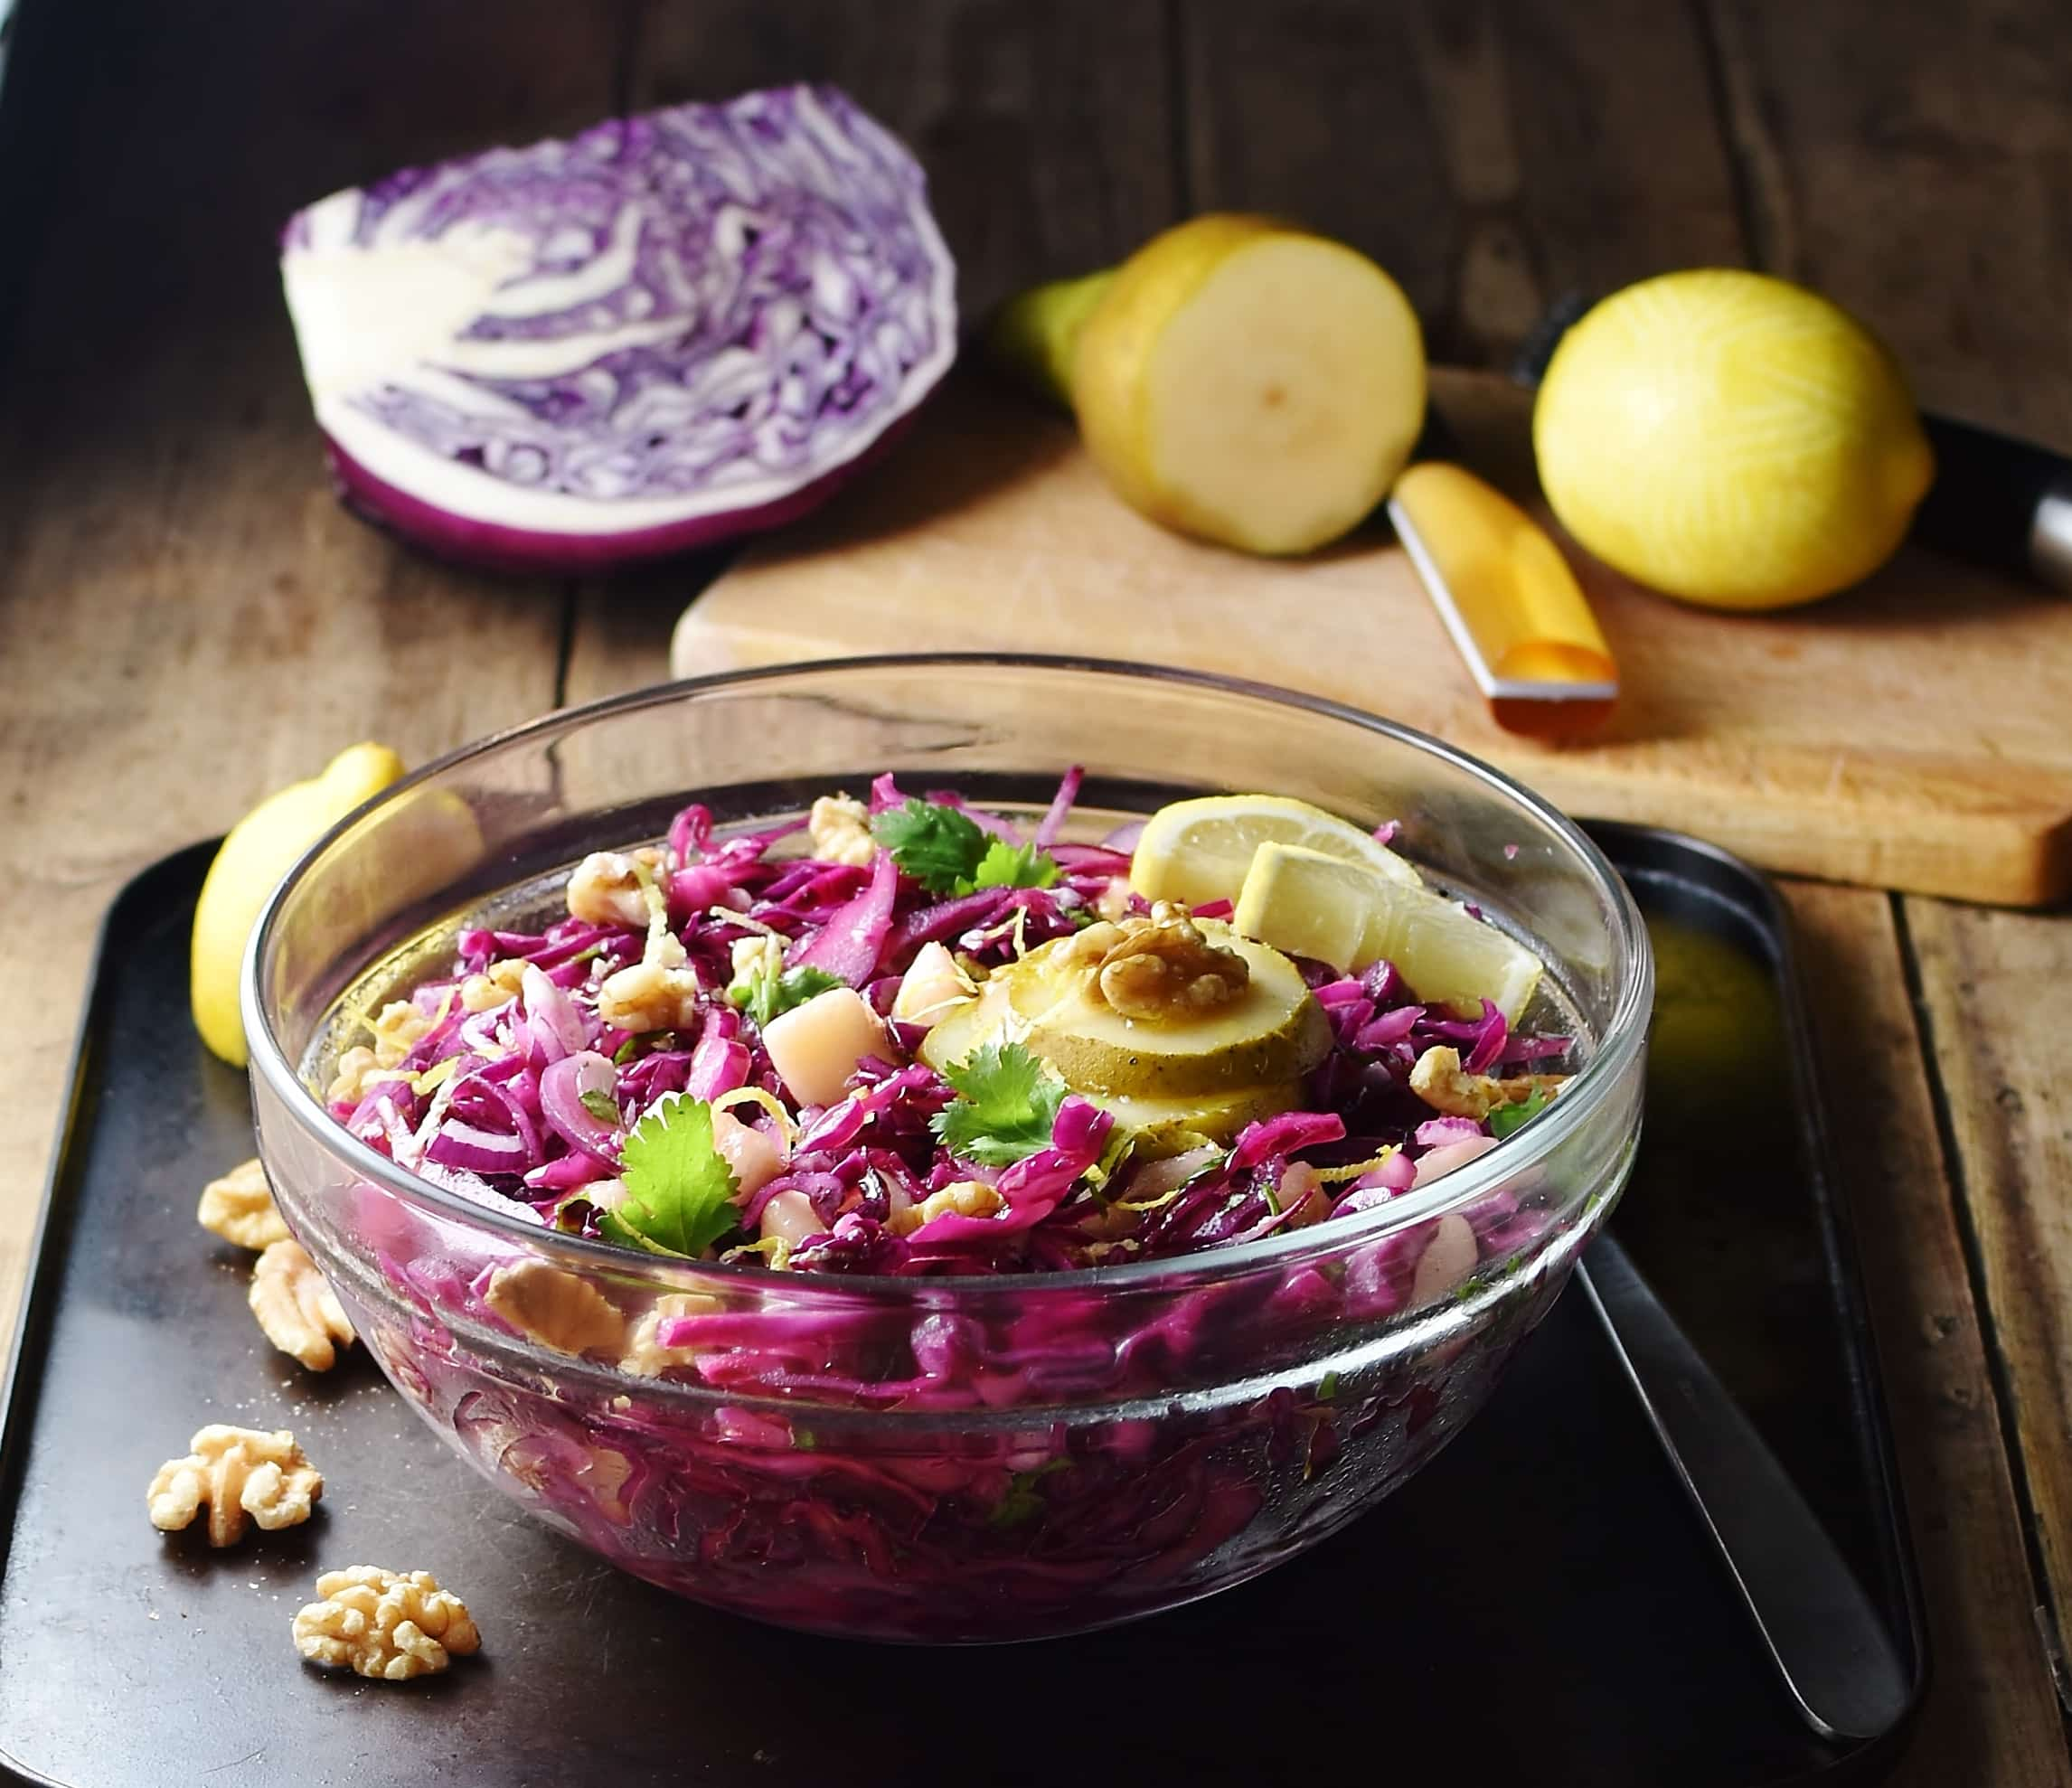 Shredded red cabbage with pear, walnuts and herbs in mixing bowl with spoon to the right, lemon ,pear, red cabbage piece and knife in background.